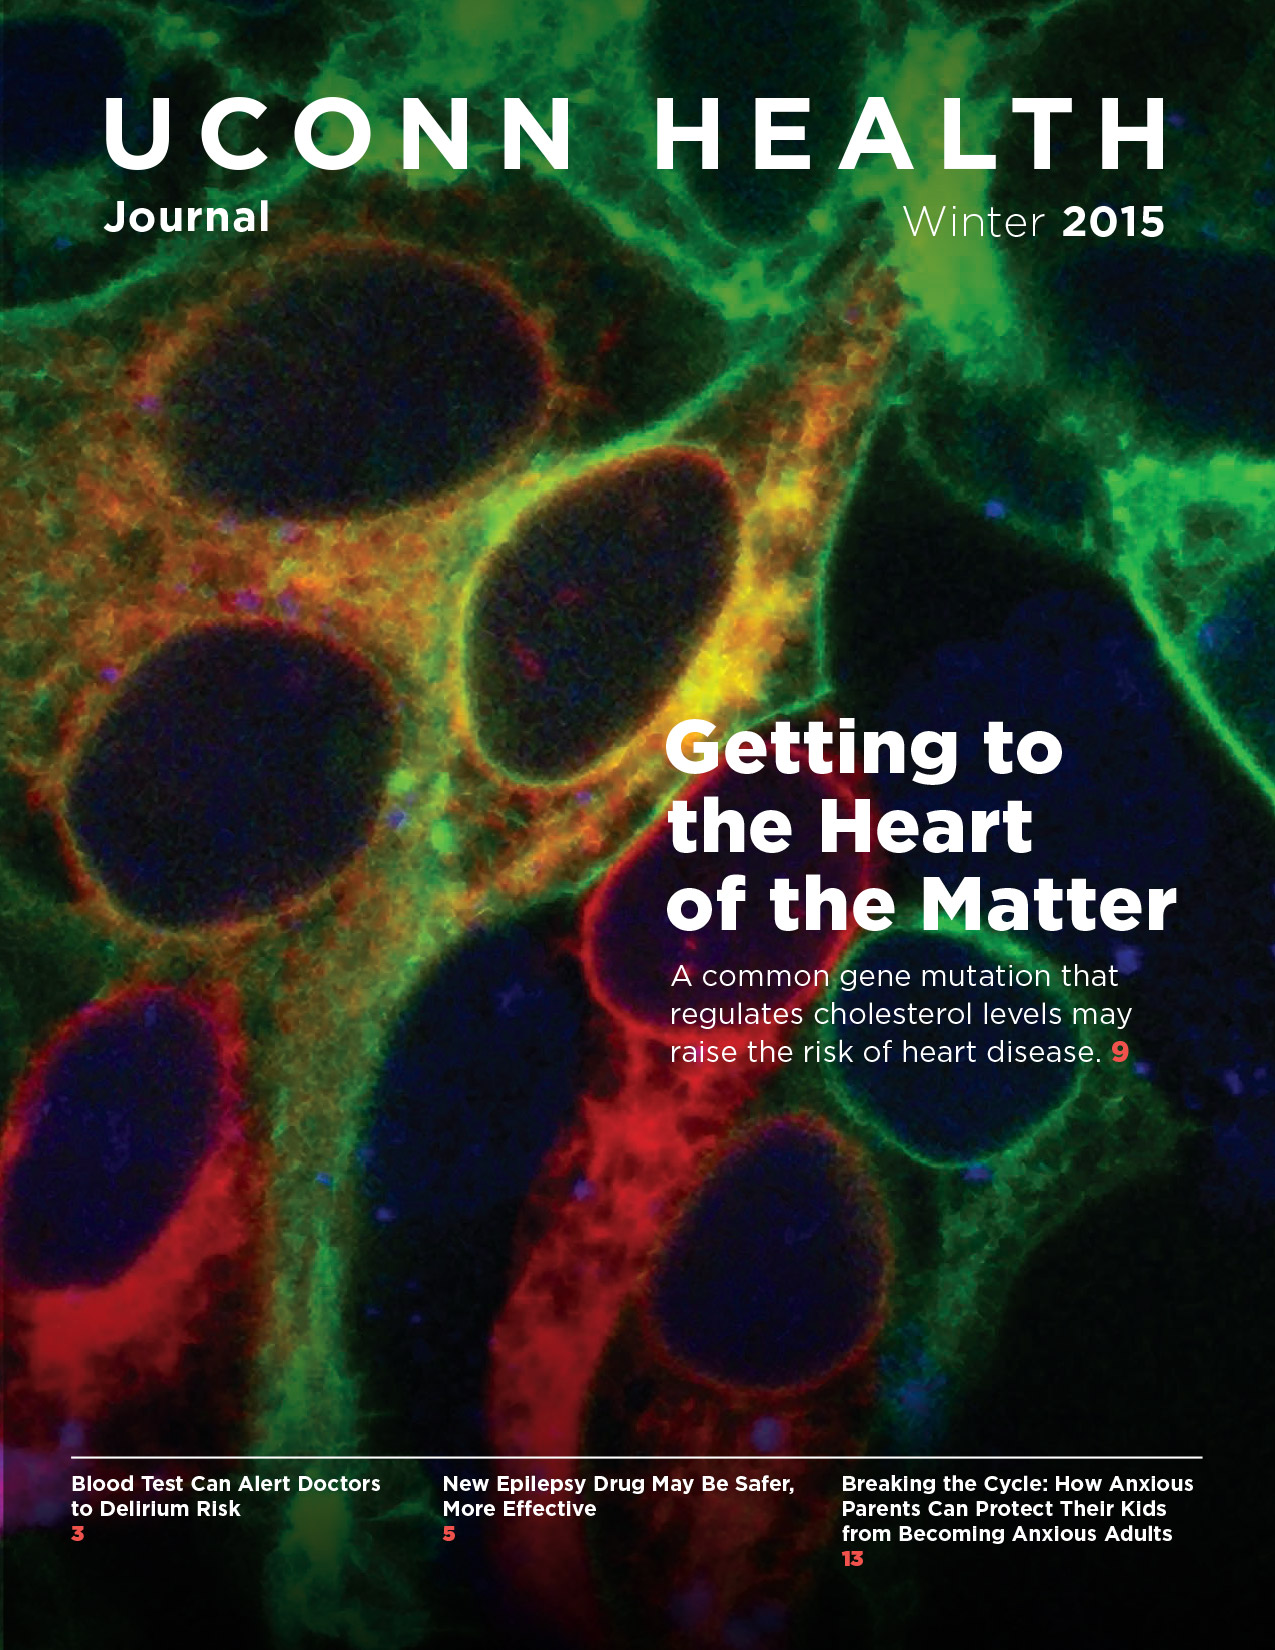 the cover of UConn Health Journal's Winter 2015 Issue